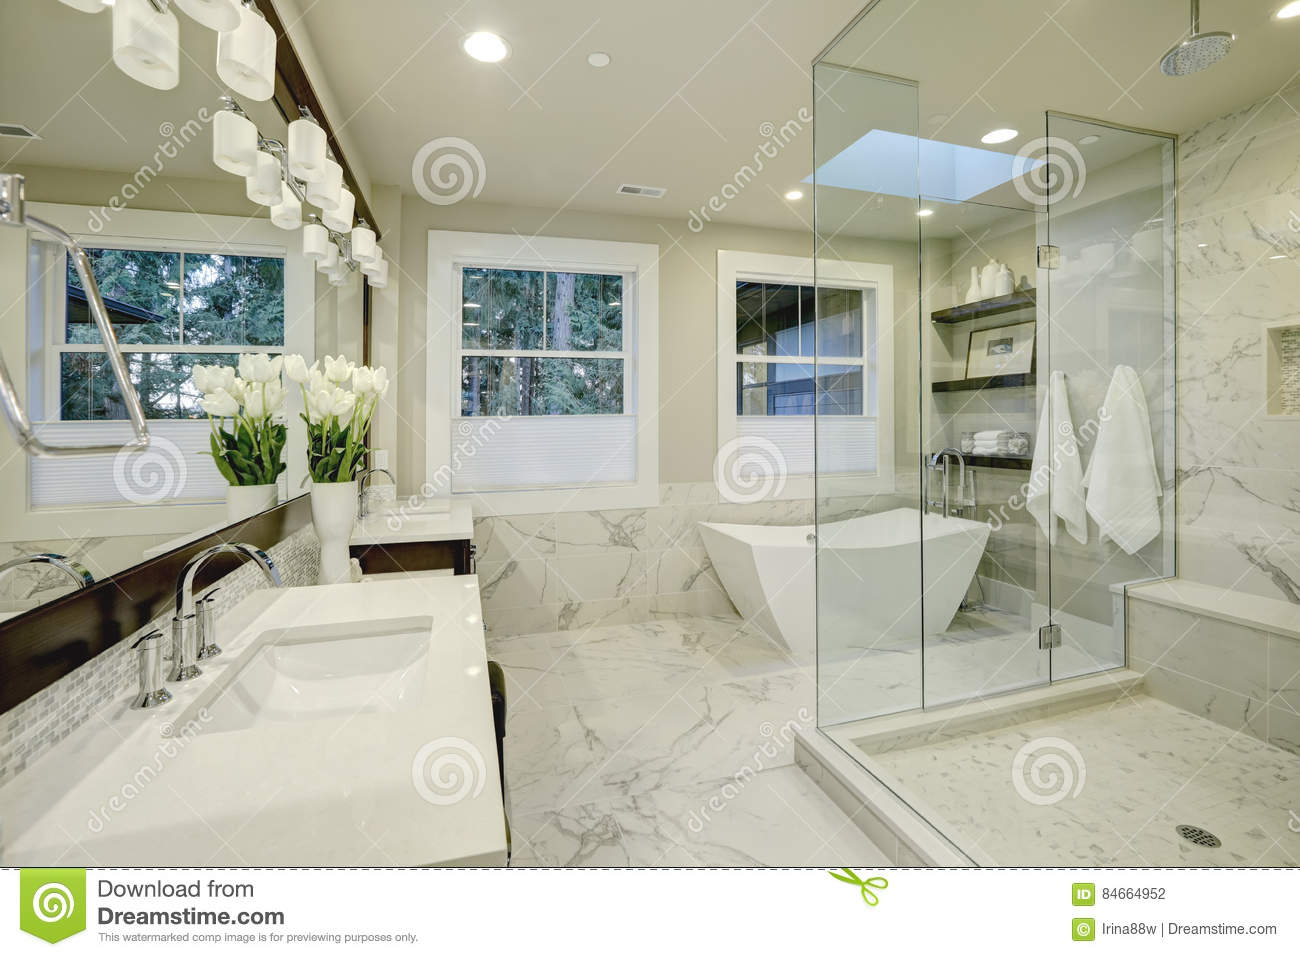 Amazing Master Bathroom With Large Glass Walk-in Shower Stock Photo ...